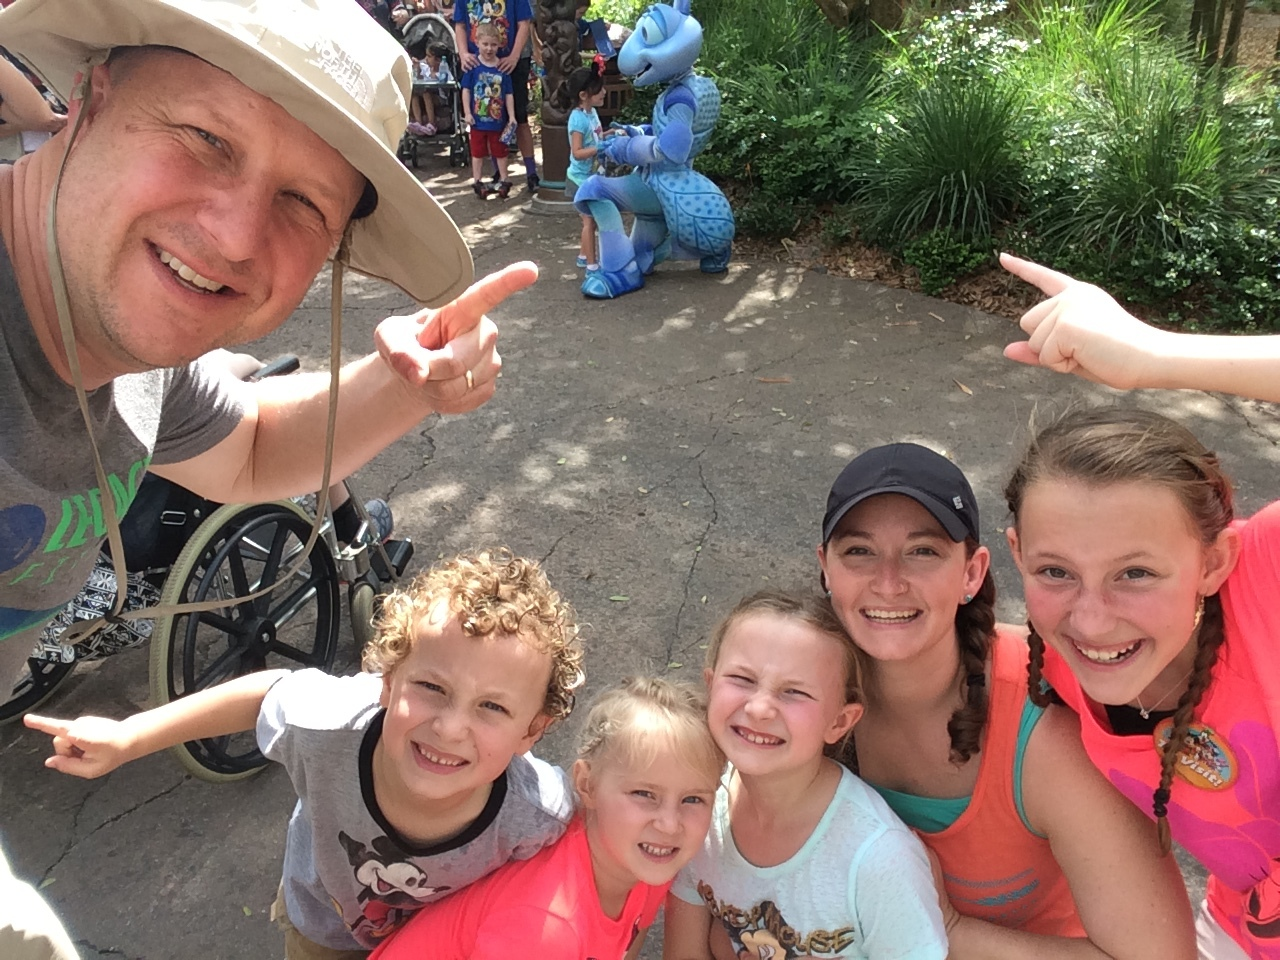 Family selfies! We decided that waiting in line to meet the characters was just our thing, but if we saw one out and about we would take a family selfie with the character in the background.